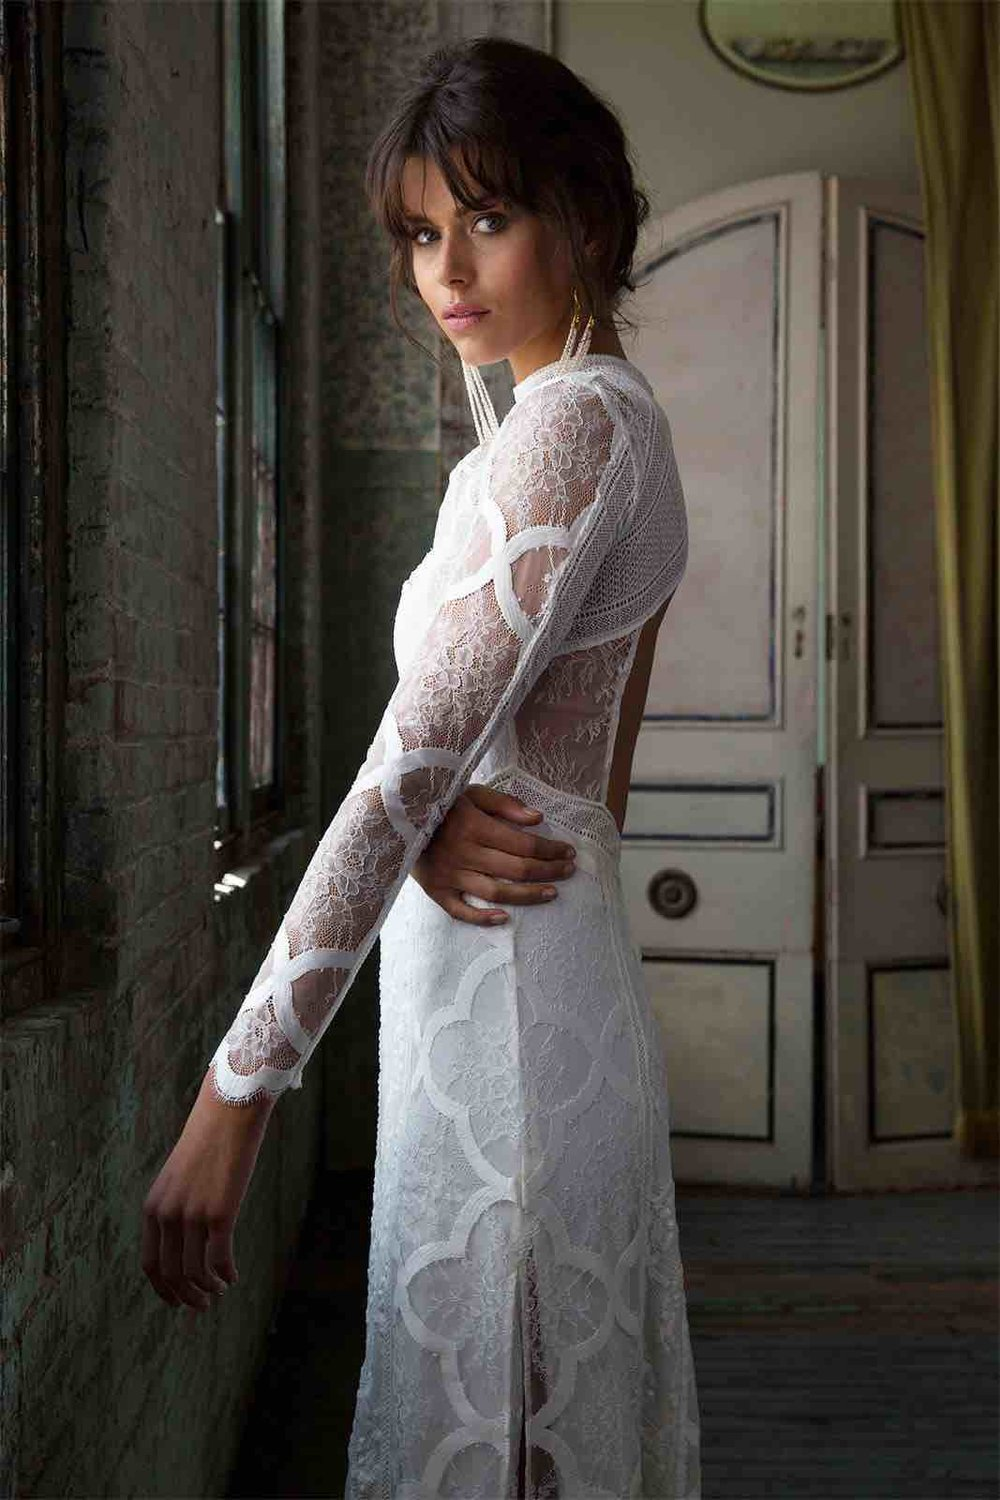 Blanc+Dress+Side+View+-+Blanc+Collection+from+Grace+Loves+Lace.jpg